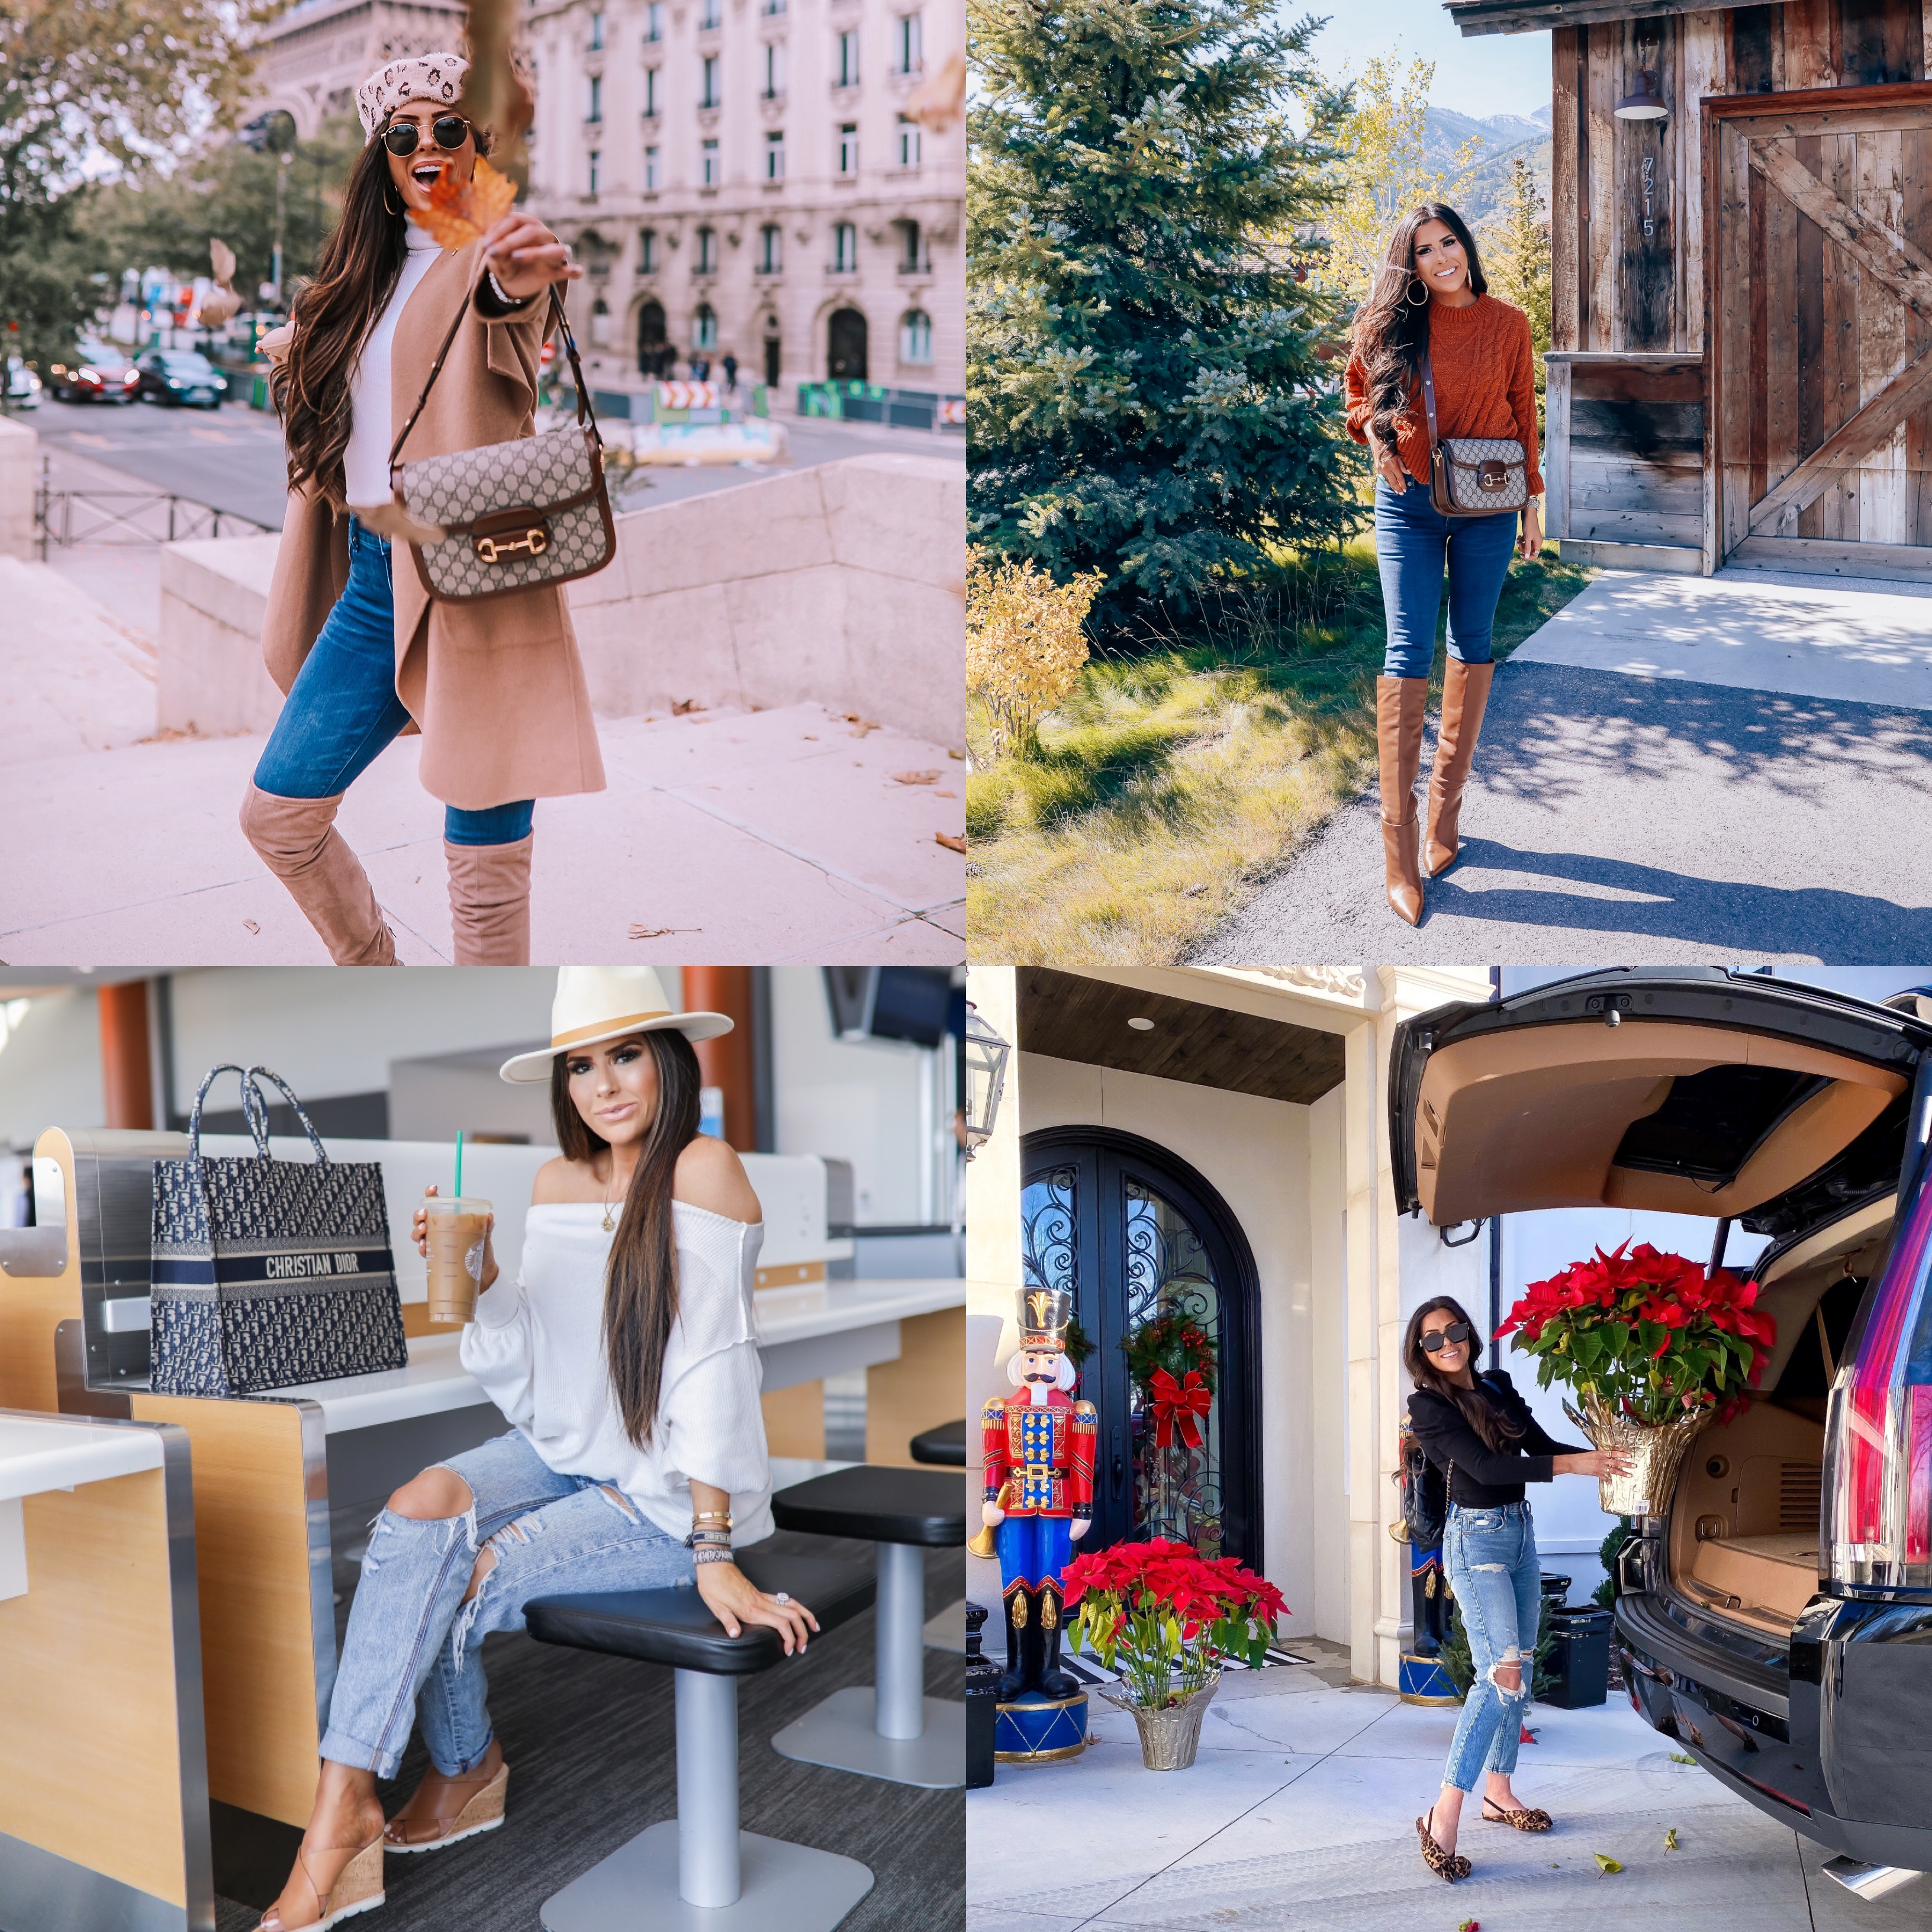 best denim of 2019, top affordable denim brands, emily | best athletic leggings lululemon, zella, spanx review | Best Wardrobe Essentials 2019👖 | Part 2 by popular US fashion blog, The Sweetest Thing: collage image of a woman wearing Express jeans and Abercrombie and Fitch High Rise Mom Jeans.